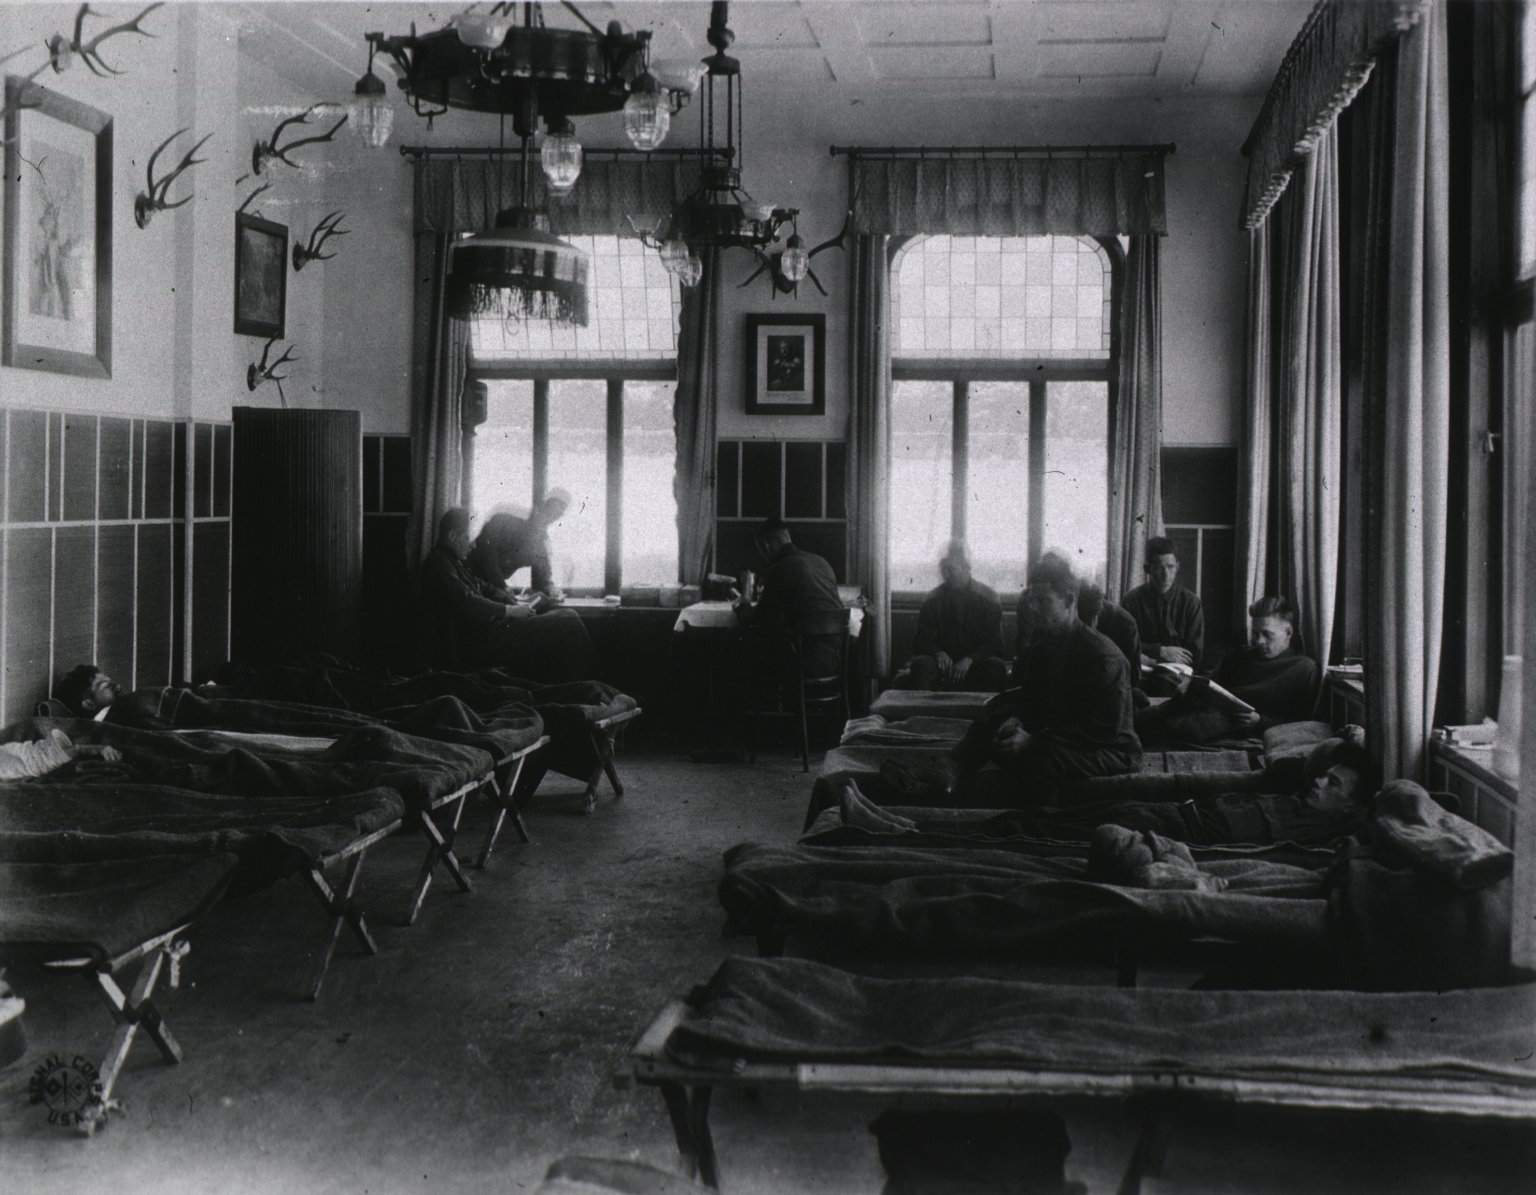 A picture of the interior of an influenza ward at a U.S. Army Field Hospital in Germany.